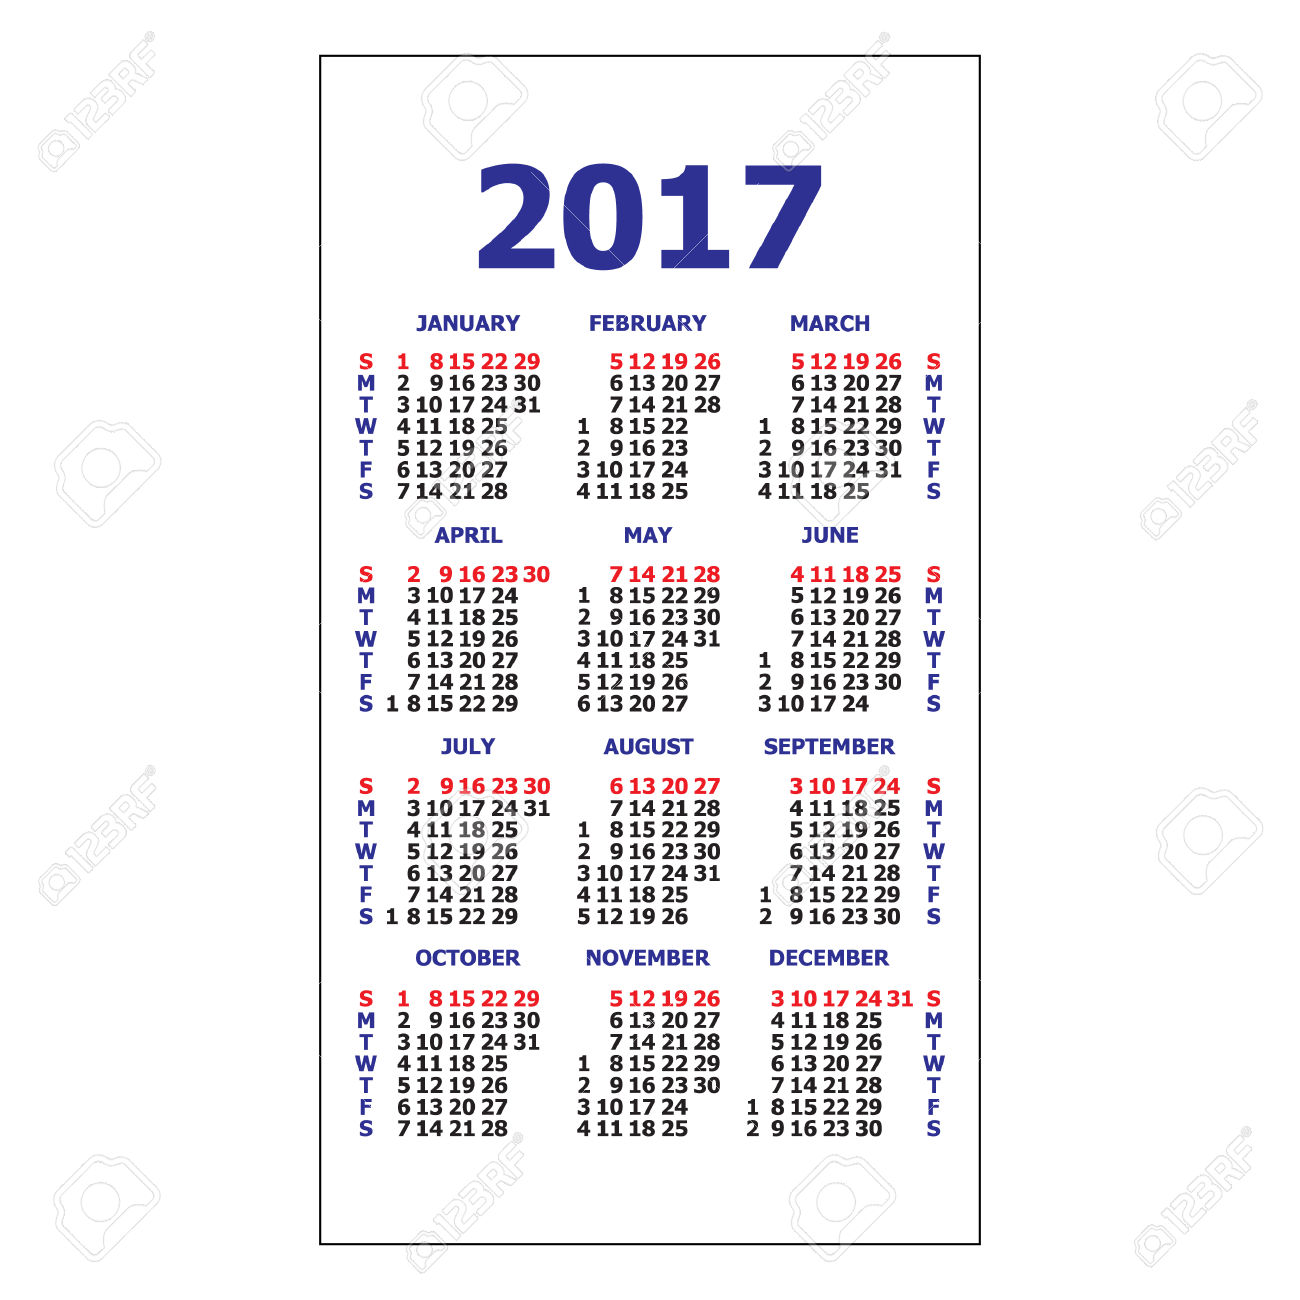 2017 Pocket Calendar. Template Calendar Grid. Vertical Orientation